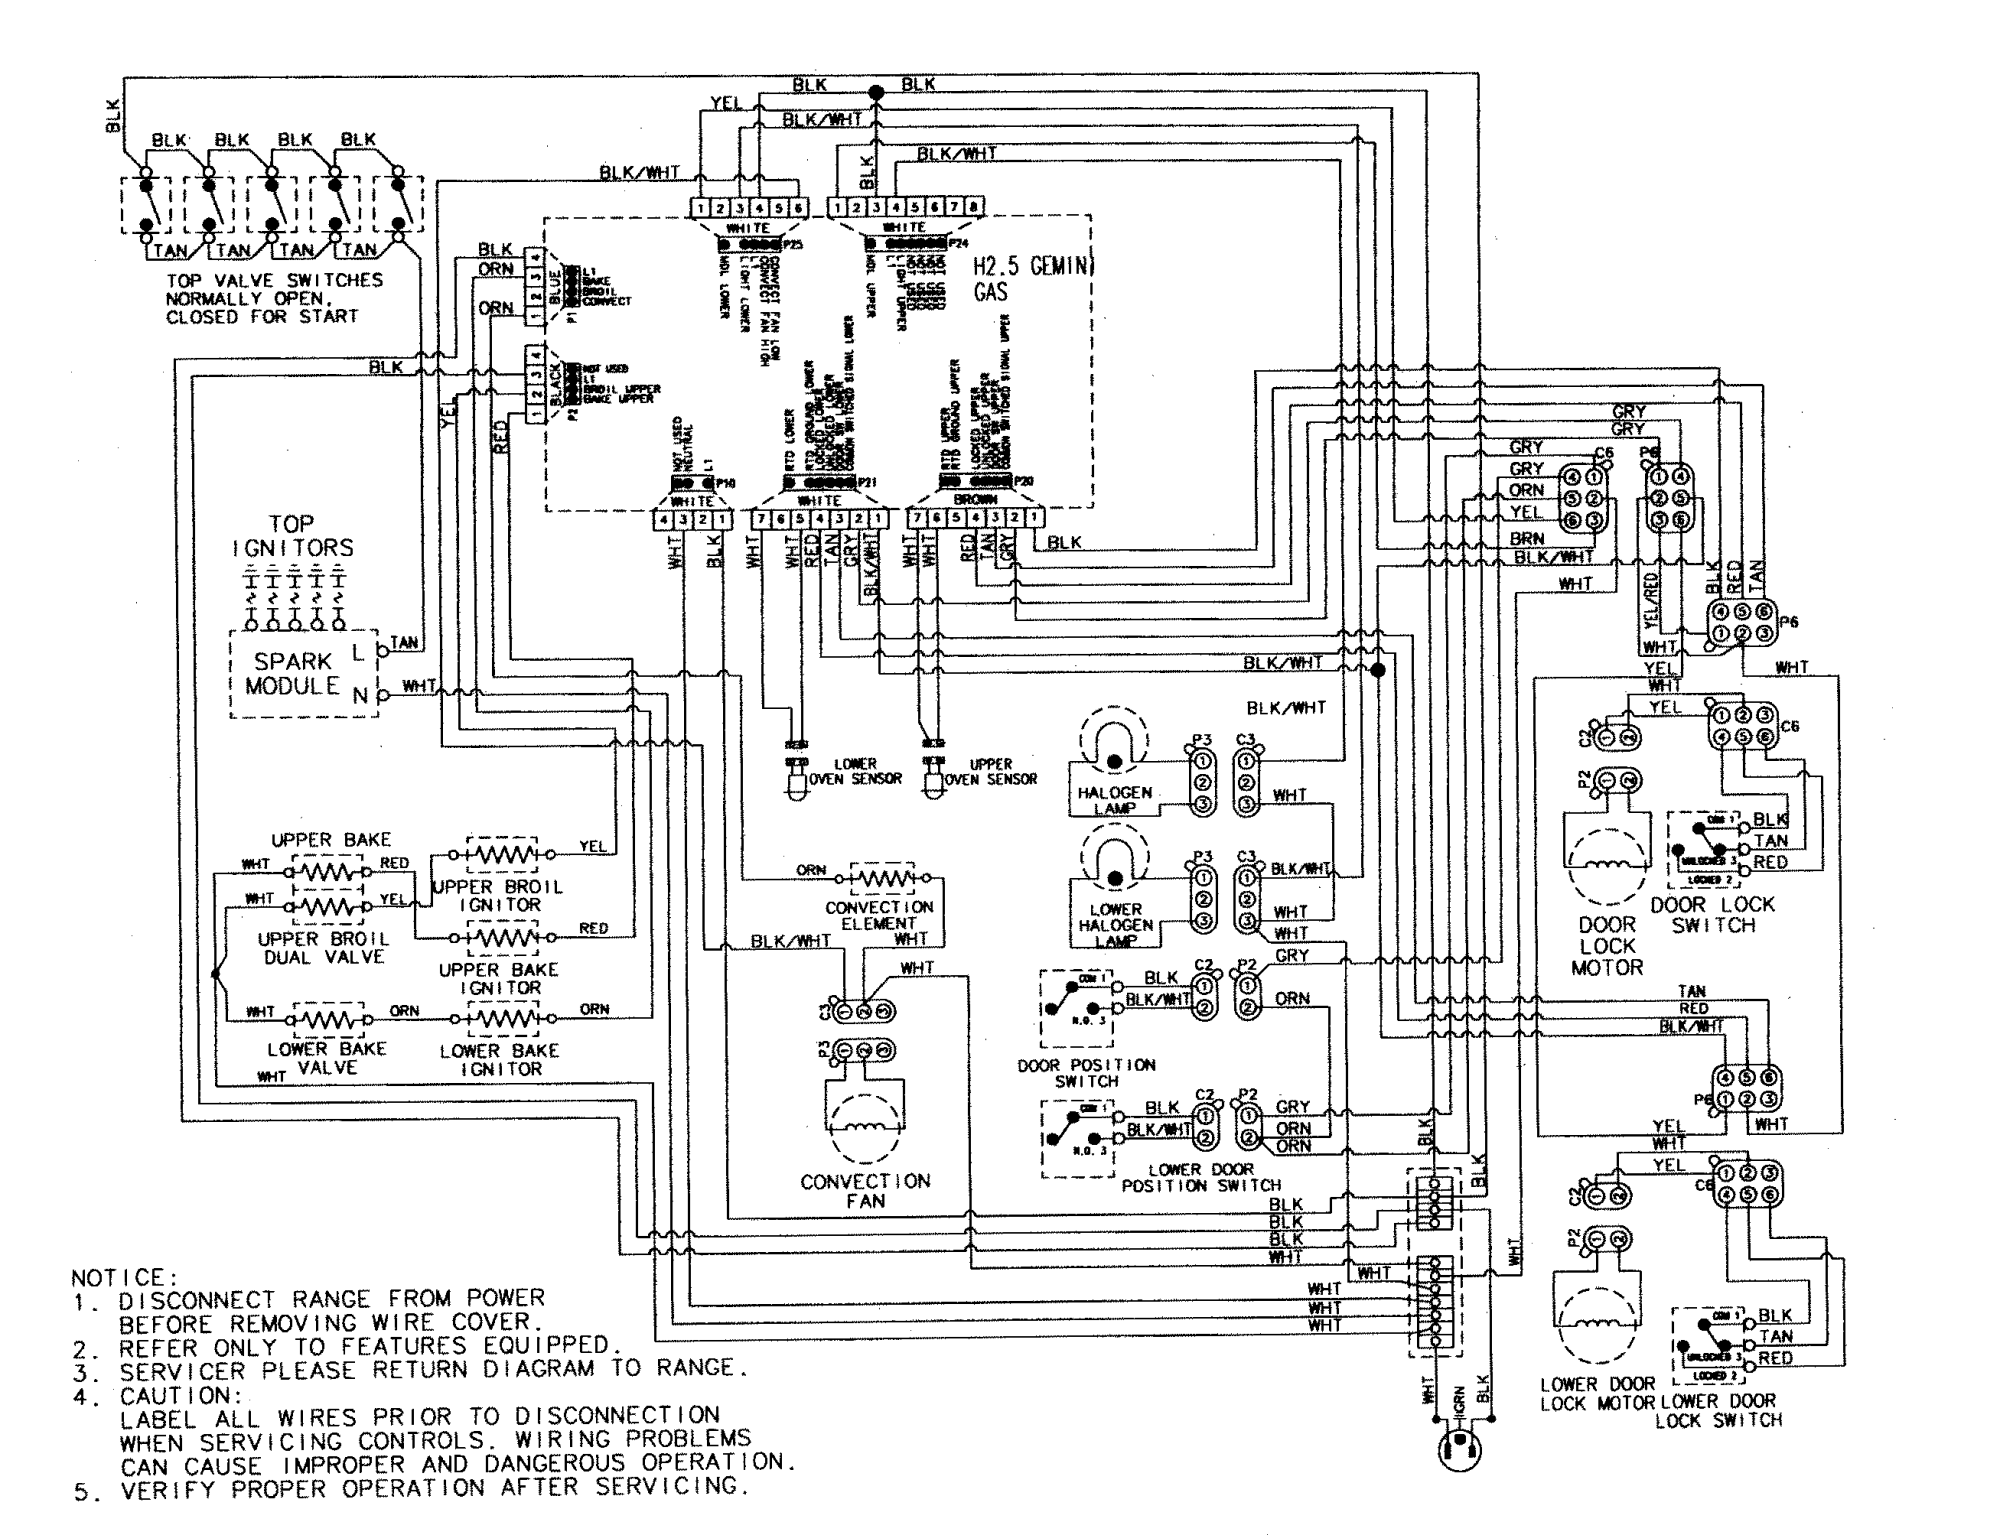 hight resolution of maytag mgr6875adq wiring information diagram